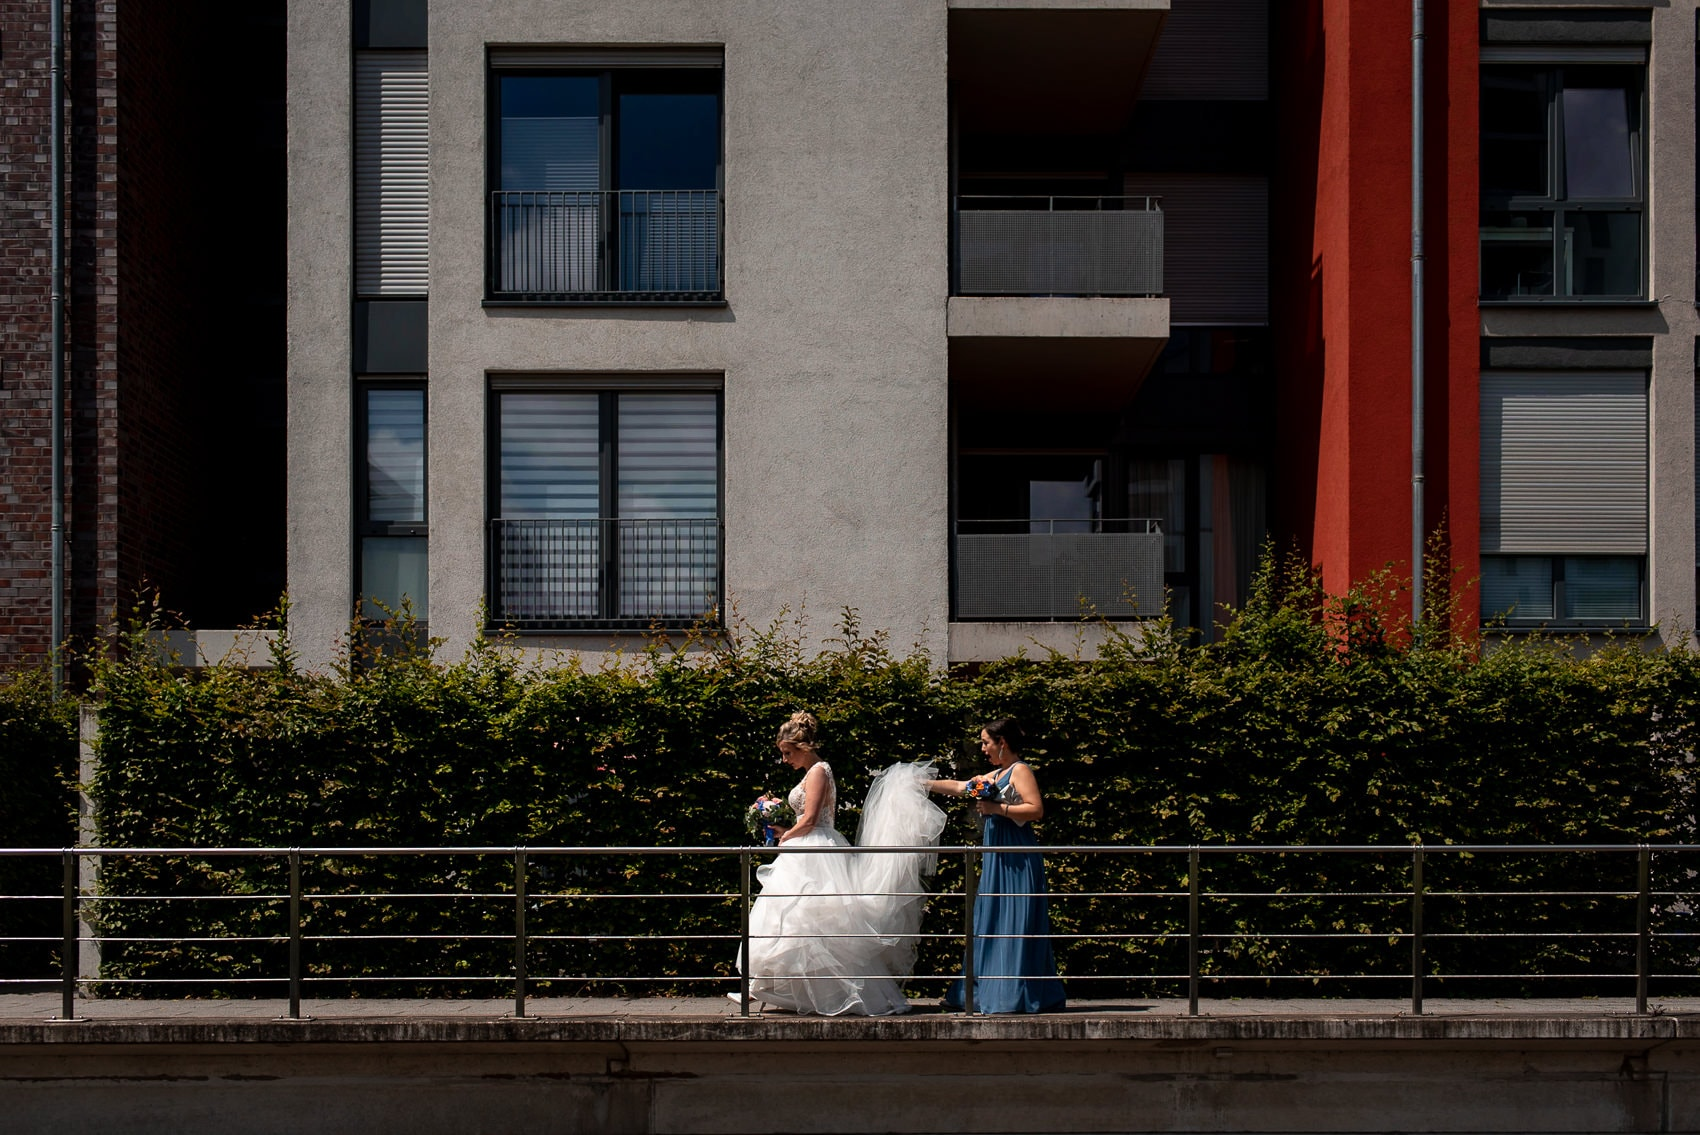 Bride in her wedding dress walking with her bridesmaid in an urban location